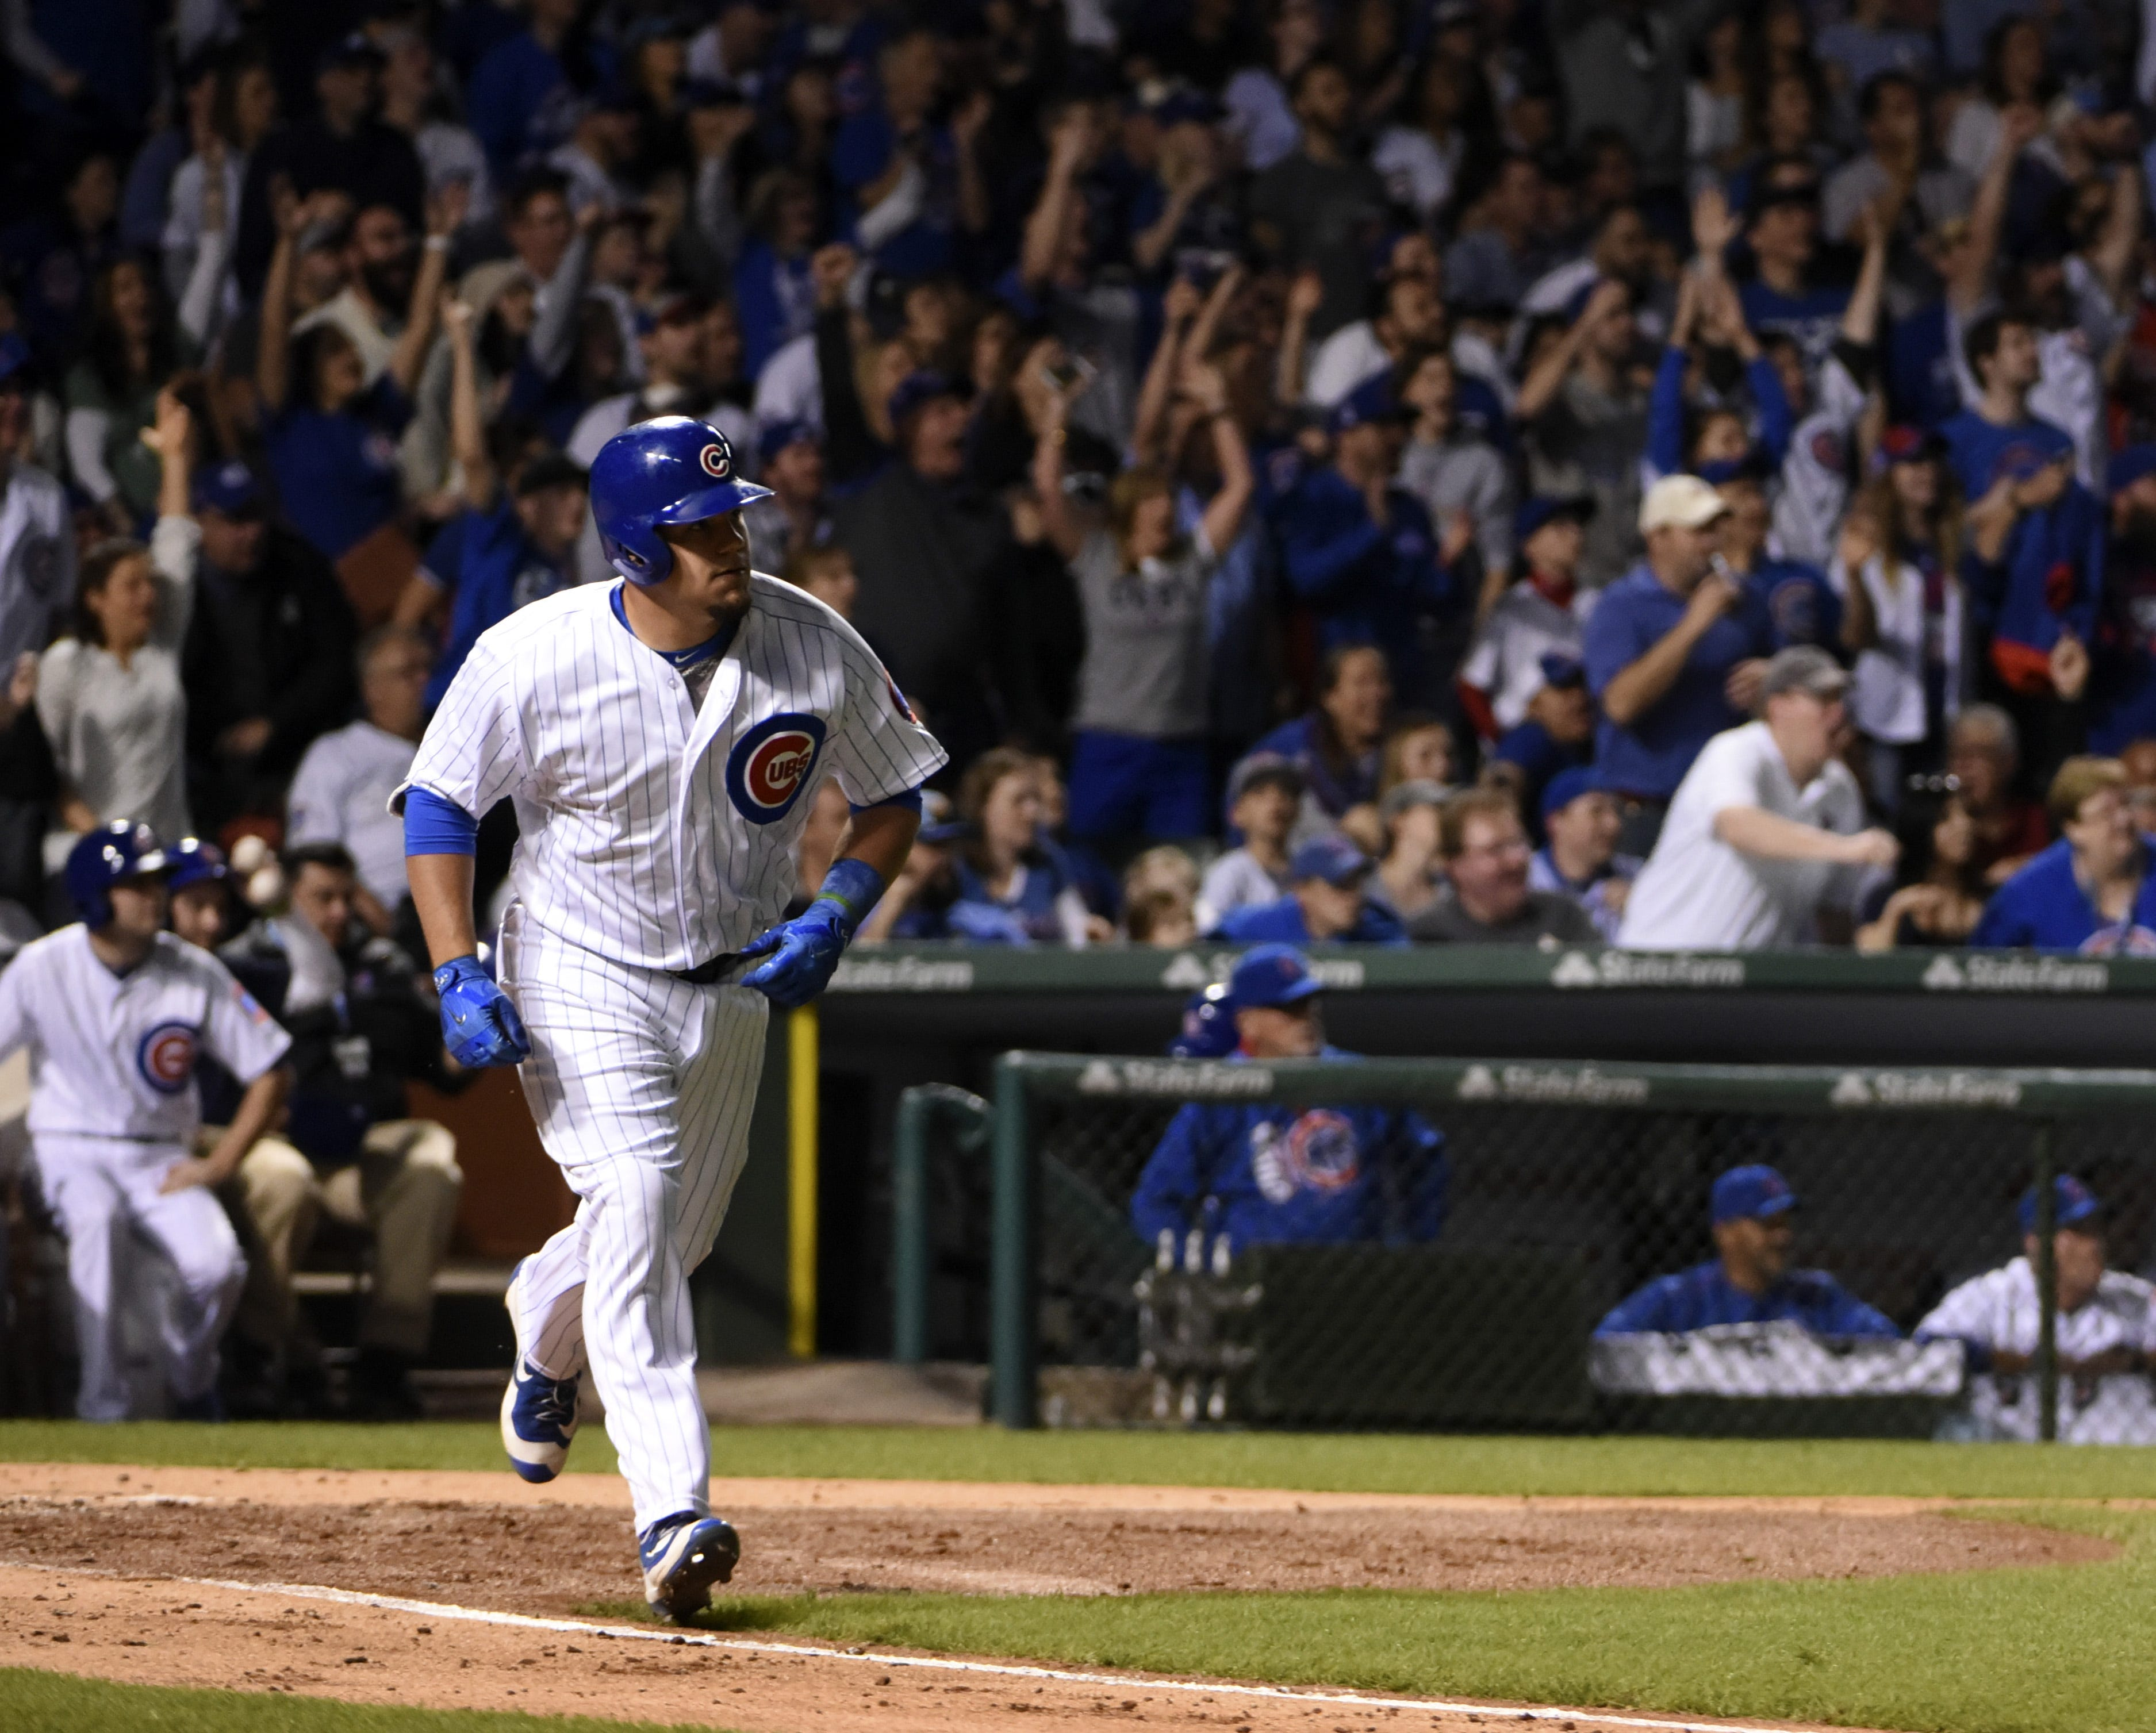 No Reds, but Kyle Schwarber among top 20 selling MLB jerseys